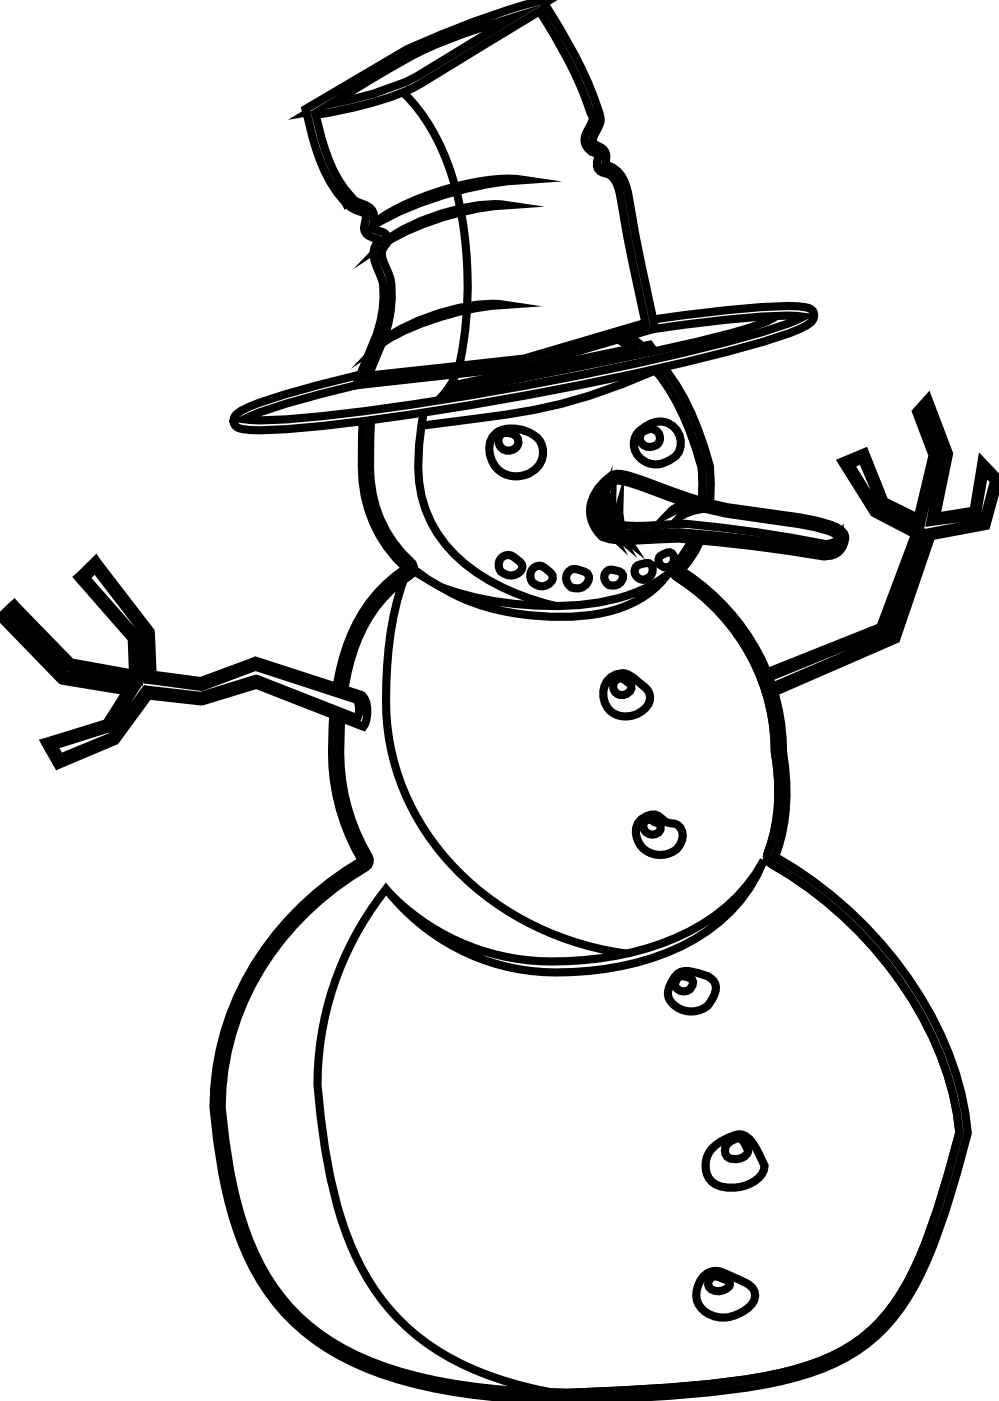 Snowman  black and white snowman black and white christmas t clipart 2